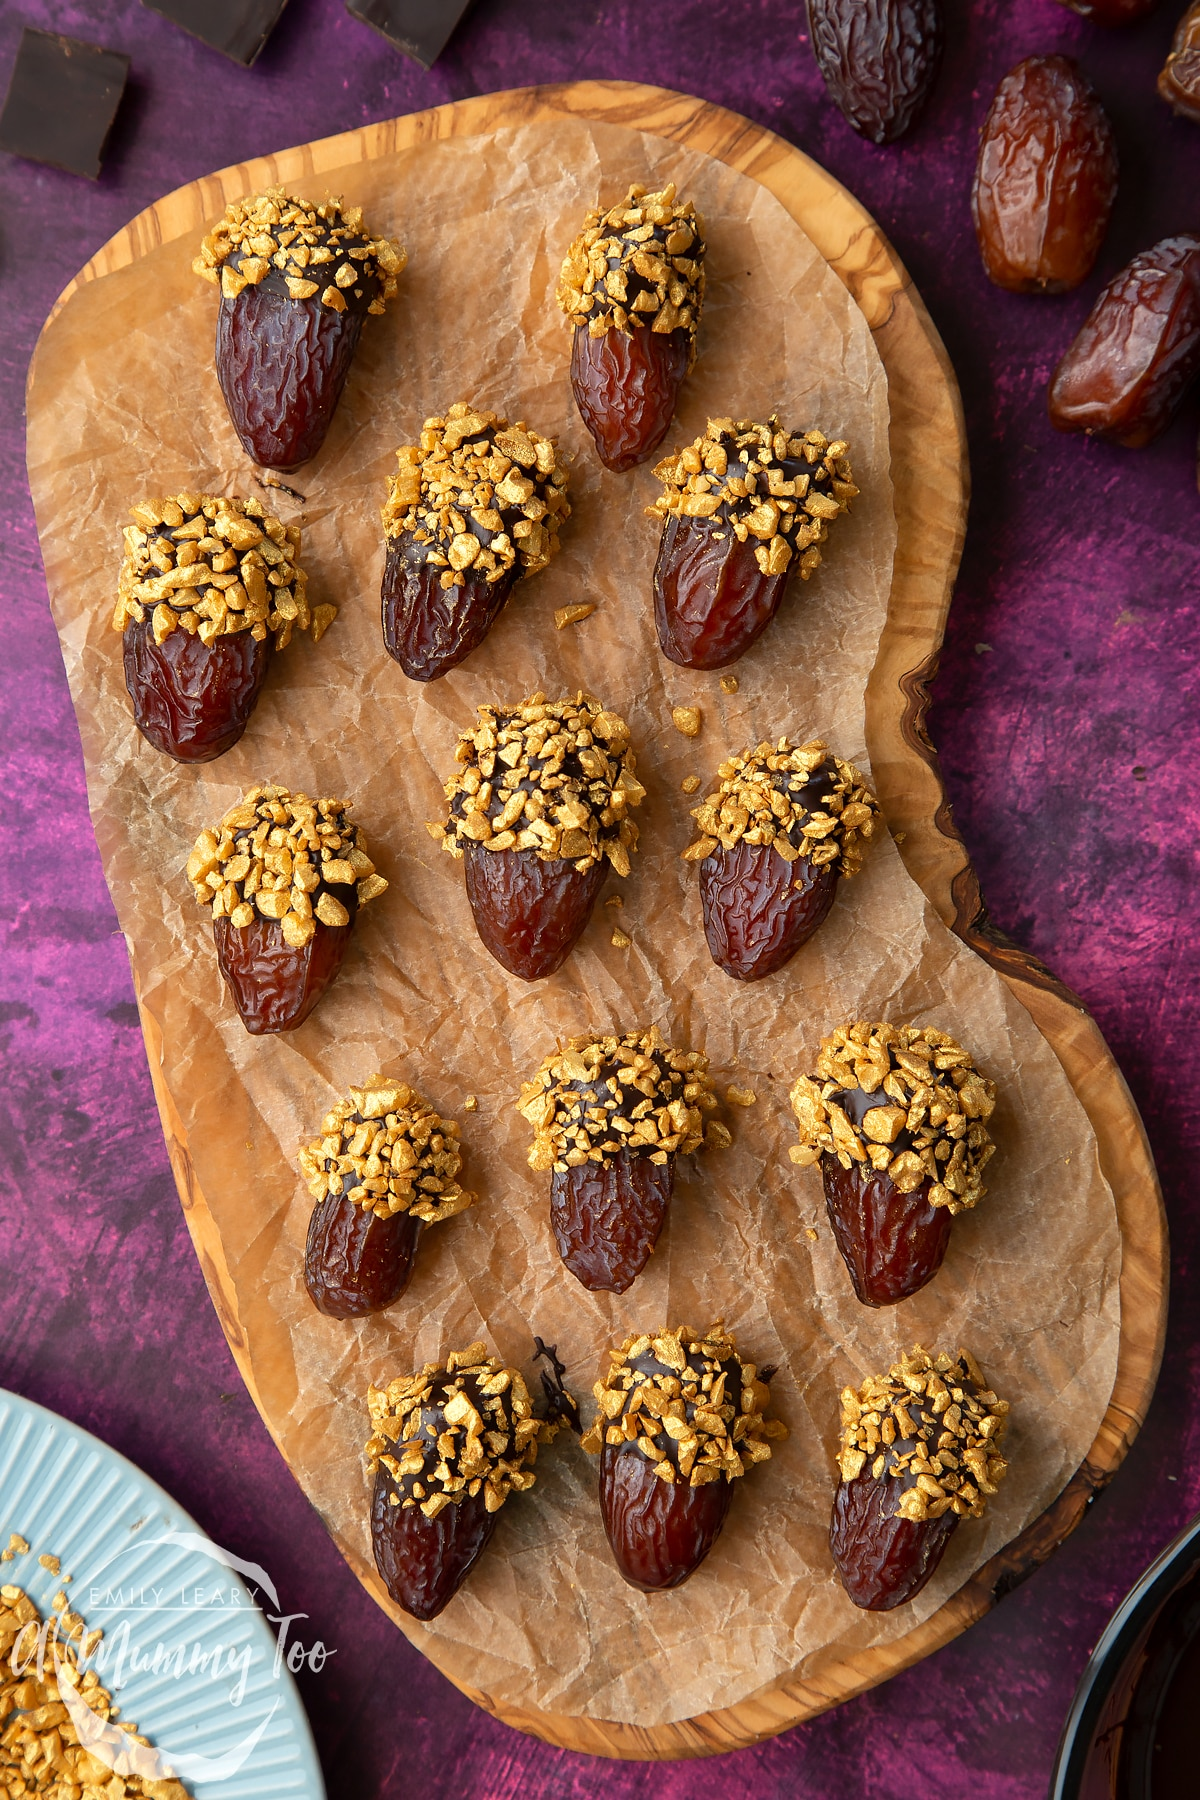 Medjool dates dipped in chocolate. The chocolate dates are on a wooden board lined with brown baking paper. The dates have be studded with gold chopped nuts. Nuts and chocolate surround the board.